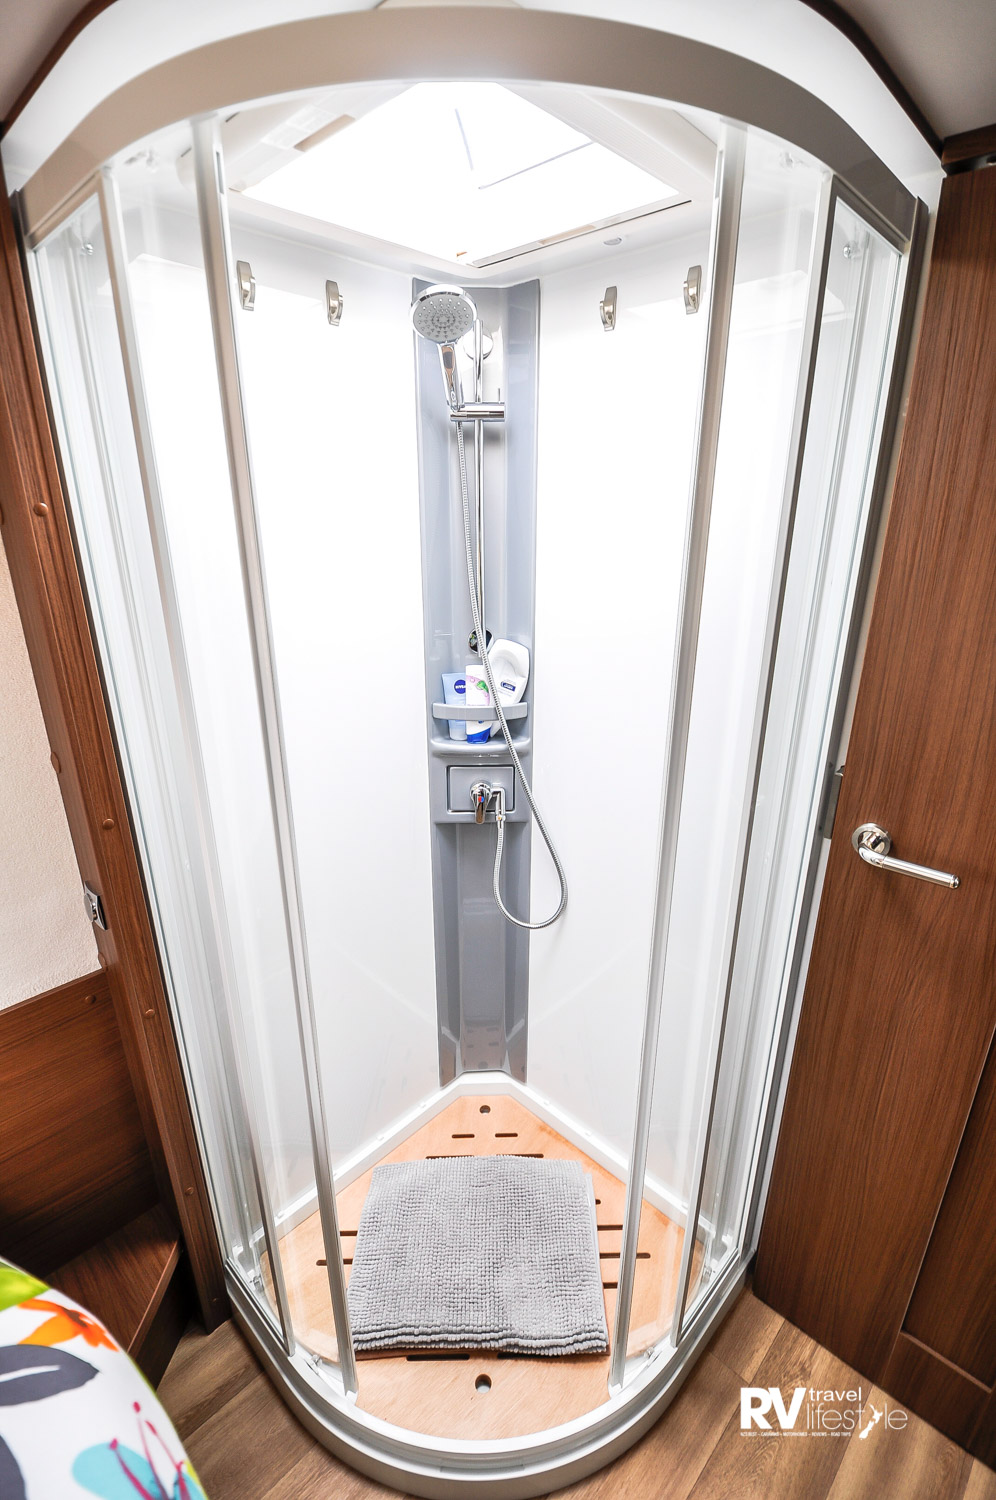 The large shower comes with a wooden floor